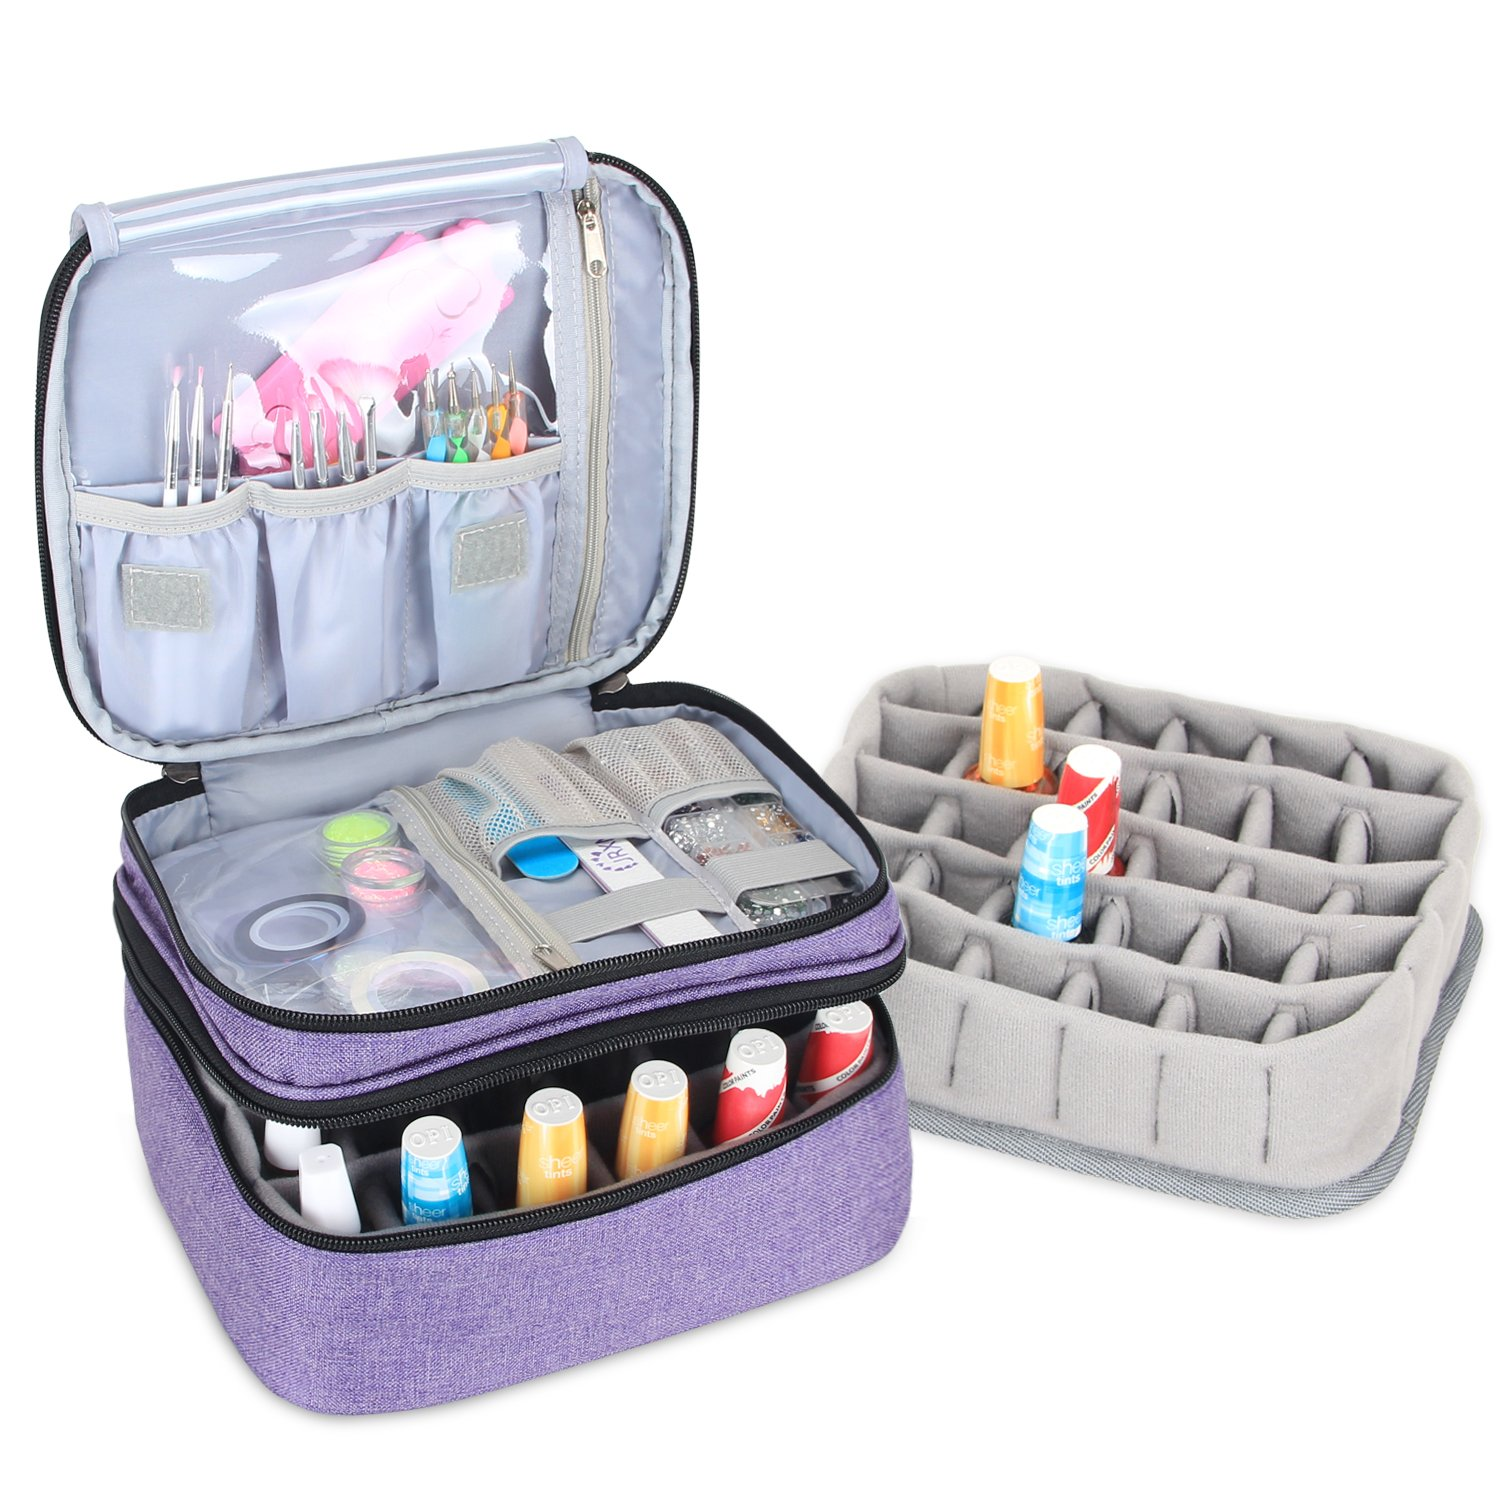 Luxja Nail Polish Carrying Case, Portable Nail Polish Organizer Holds 30 Bottles, Double-layer Organizer Holders for Nail Polish and Manicure Set, Black